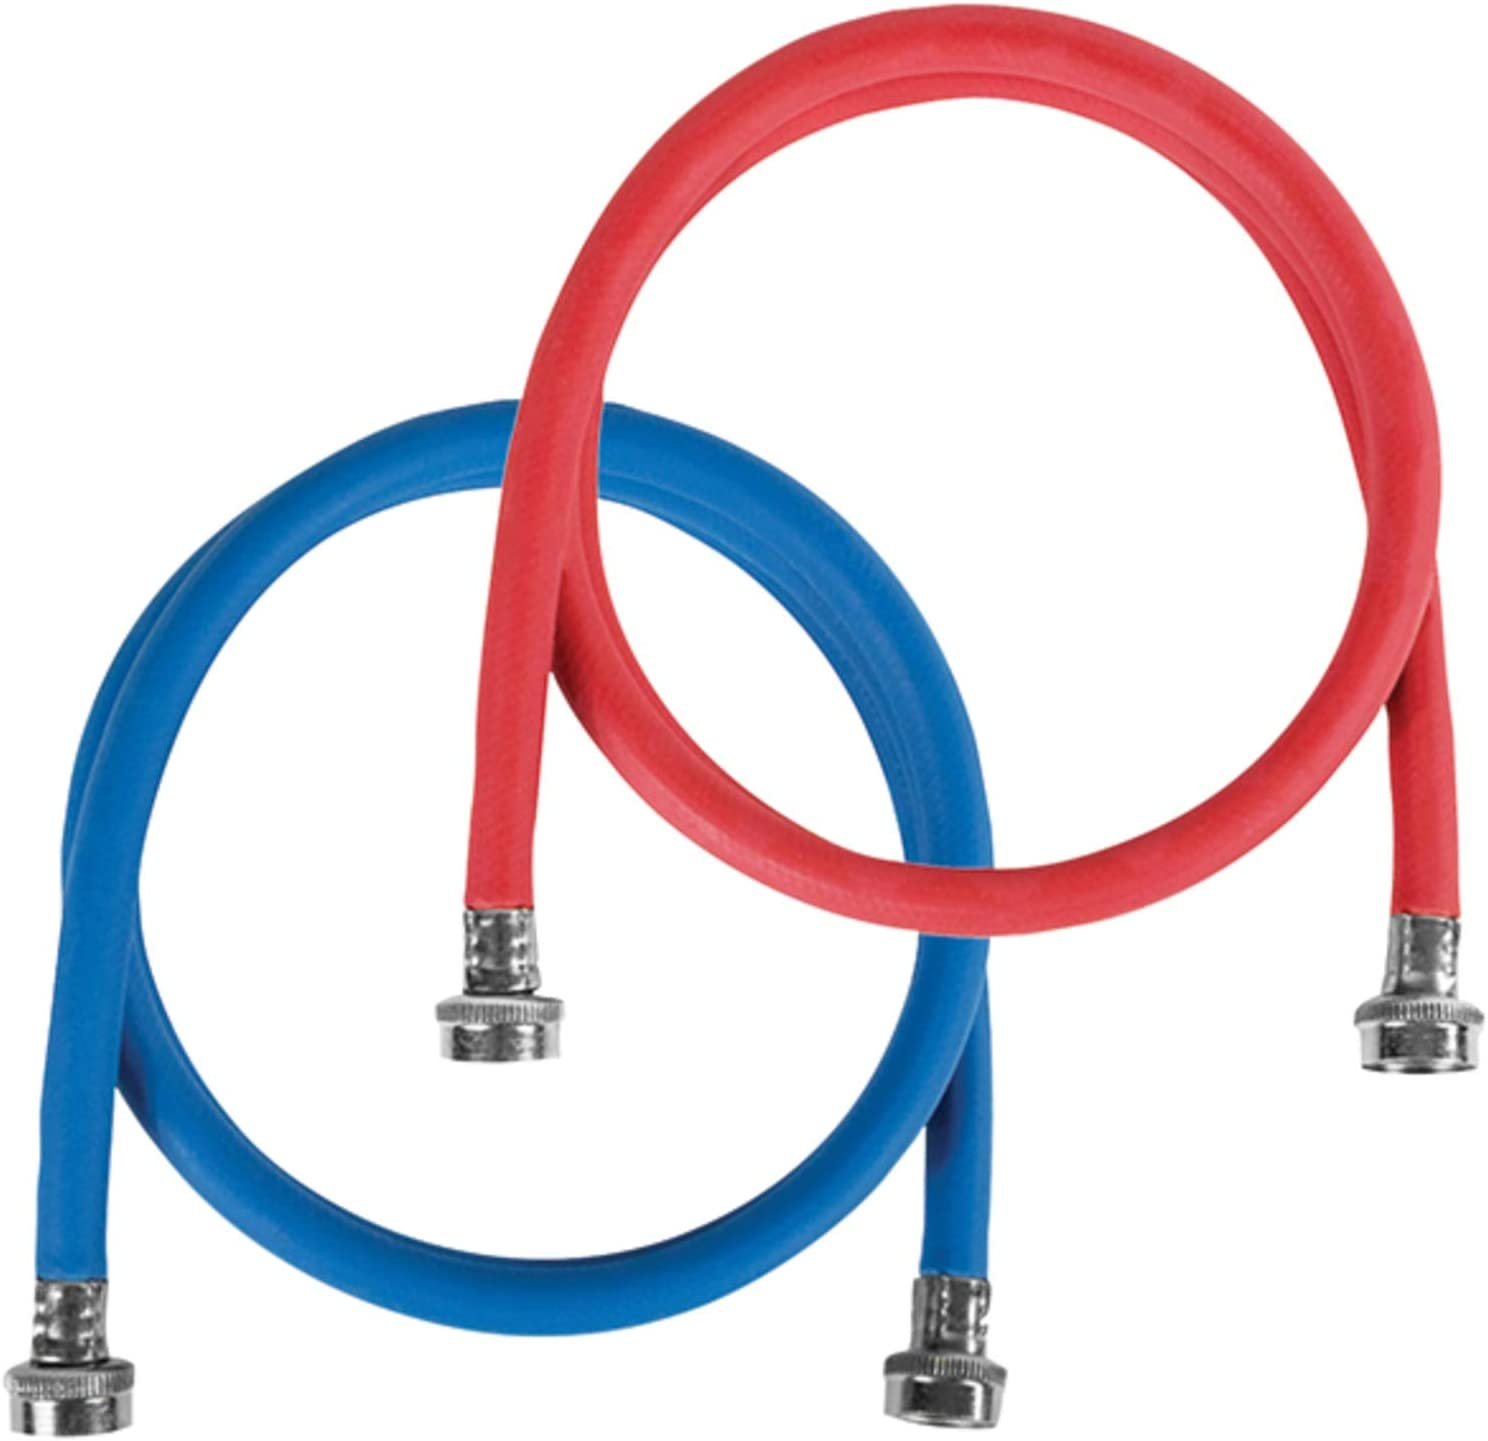 Certified Appliance Accessories Washing Machine Hose (2 Pack), Hot and Cold Water Supply Line, 6 Feet, Polyester-Reinforced EPDM, 1 Red and 1 Blue